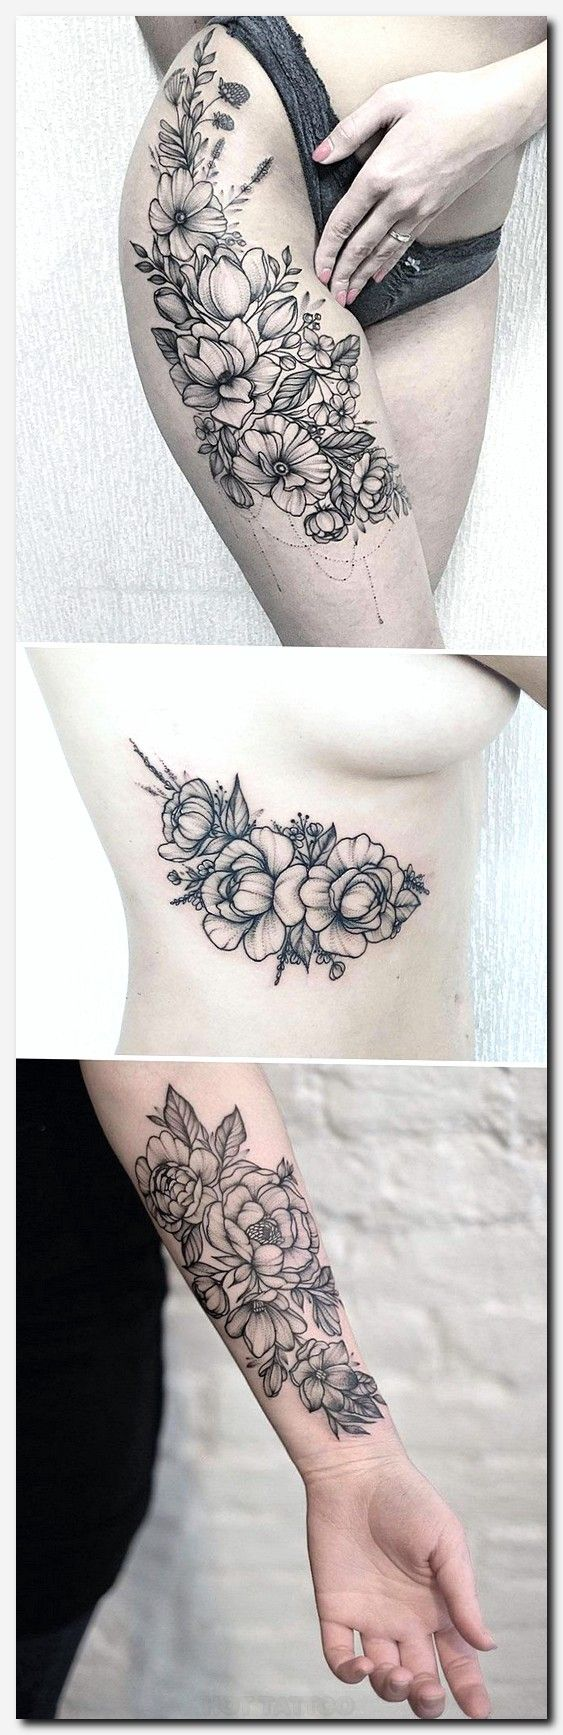 Best 25 Small 3D Tattoos Ideas On Pinterest Small Ideas And Designs